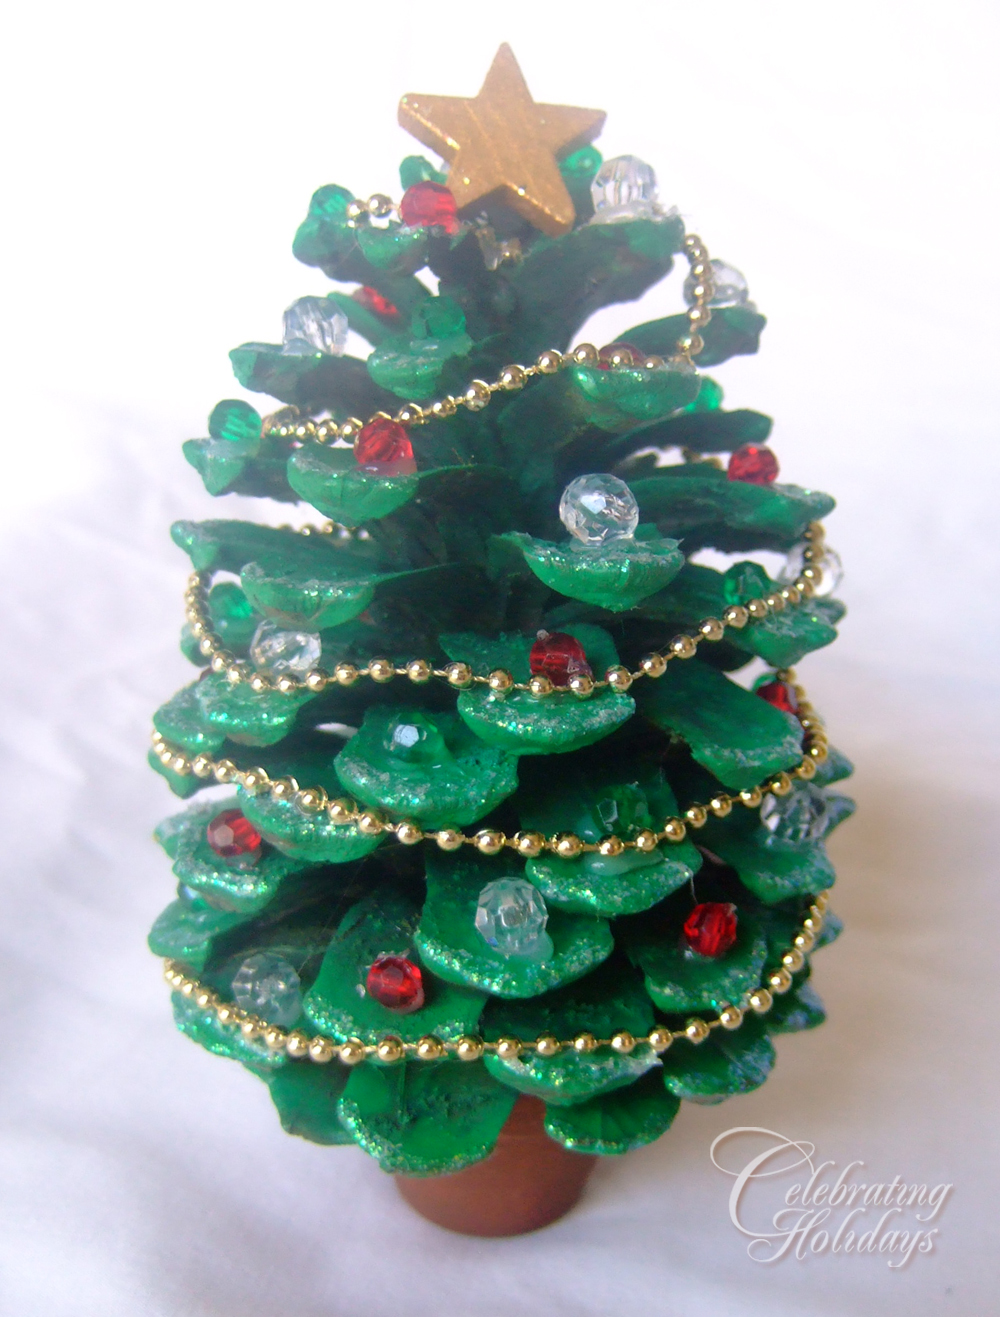 Pinecone christmas tree craft celebrating holidays for Pine cone christmas tree craft